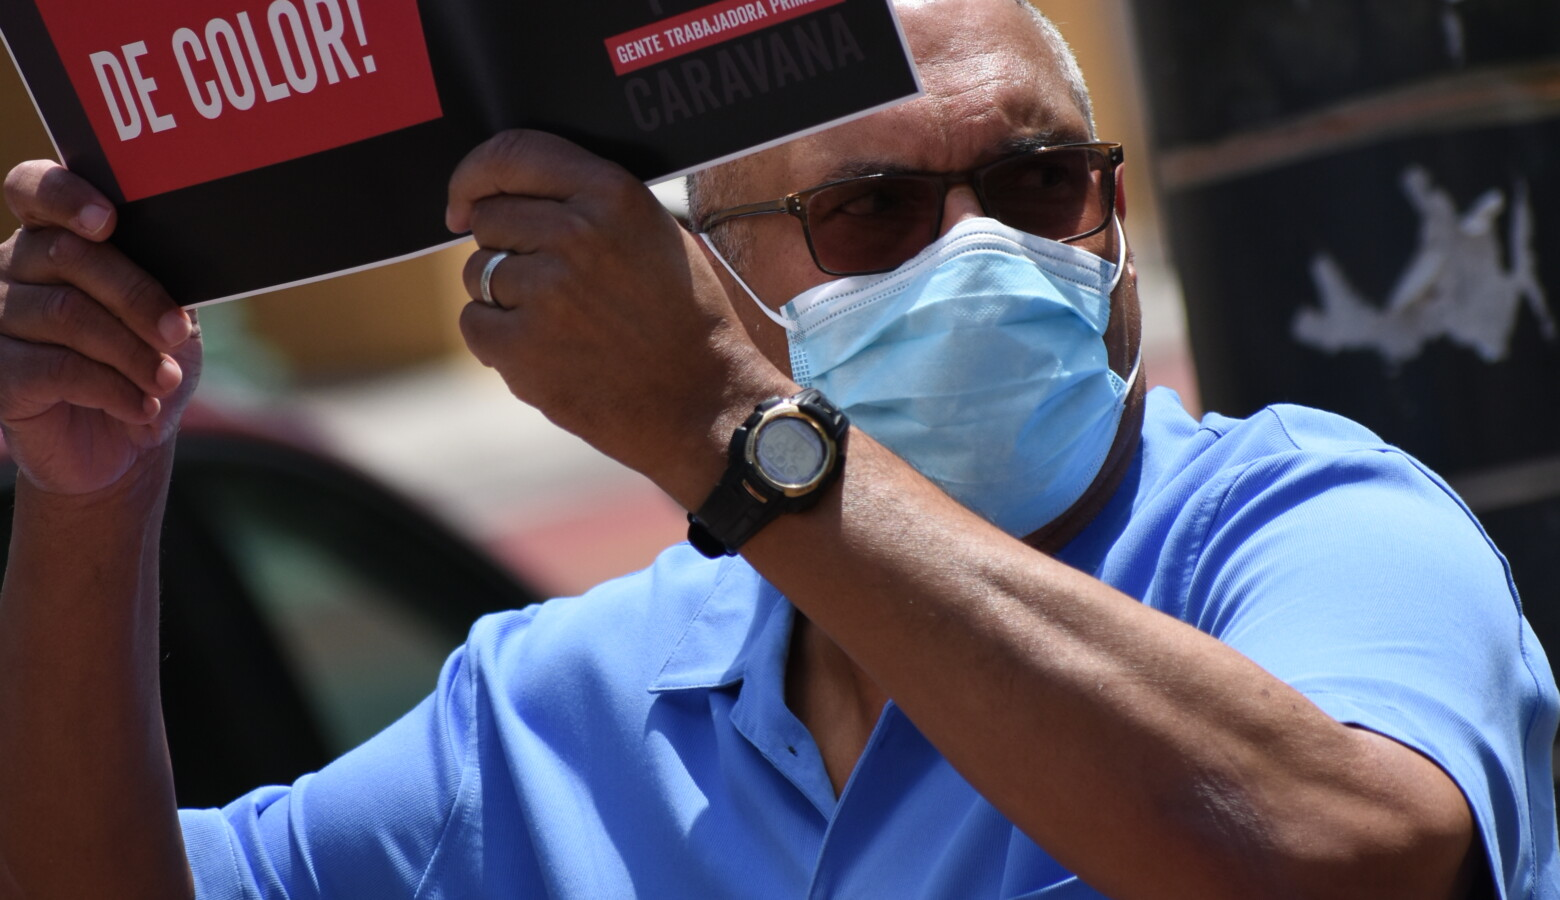 Democratic gubernatorial candidate Dr. Woody Myers wears a face mask during a union-organized rally in support of the Black Lives Matter movement. (Justin Hicks/IPB News)